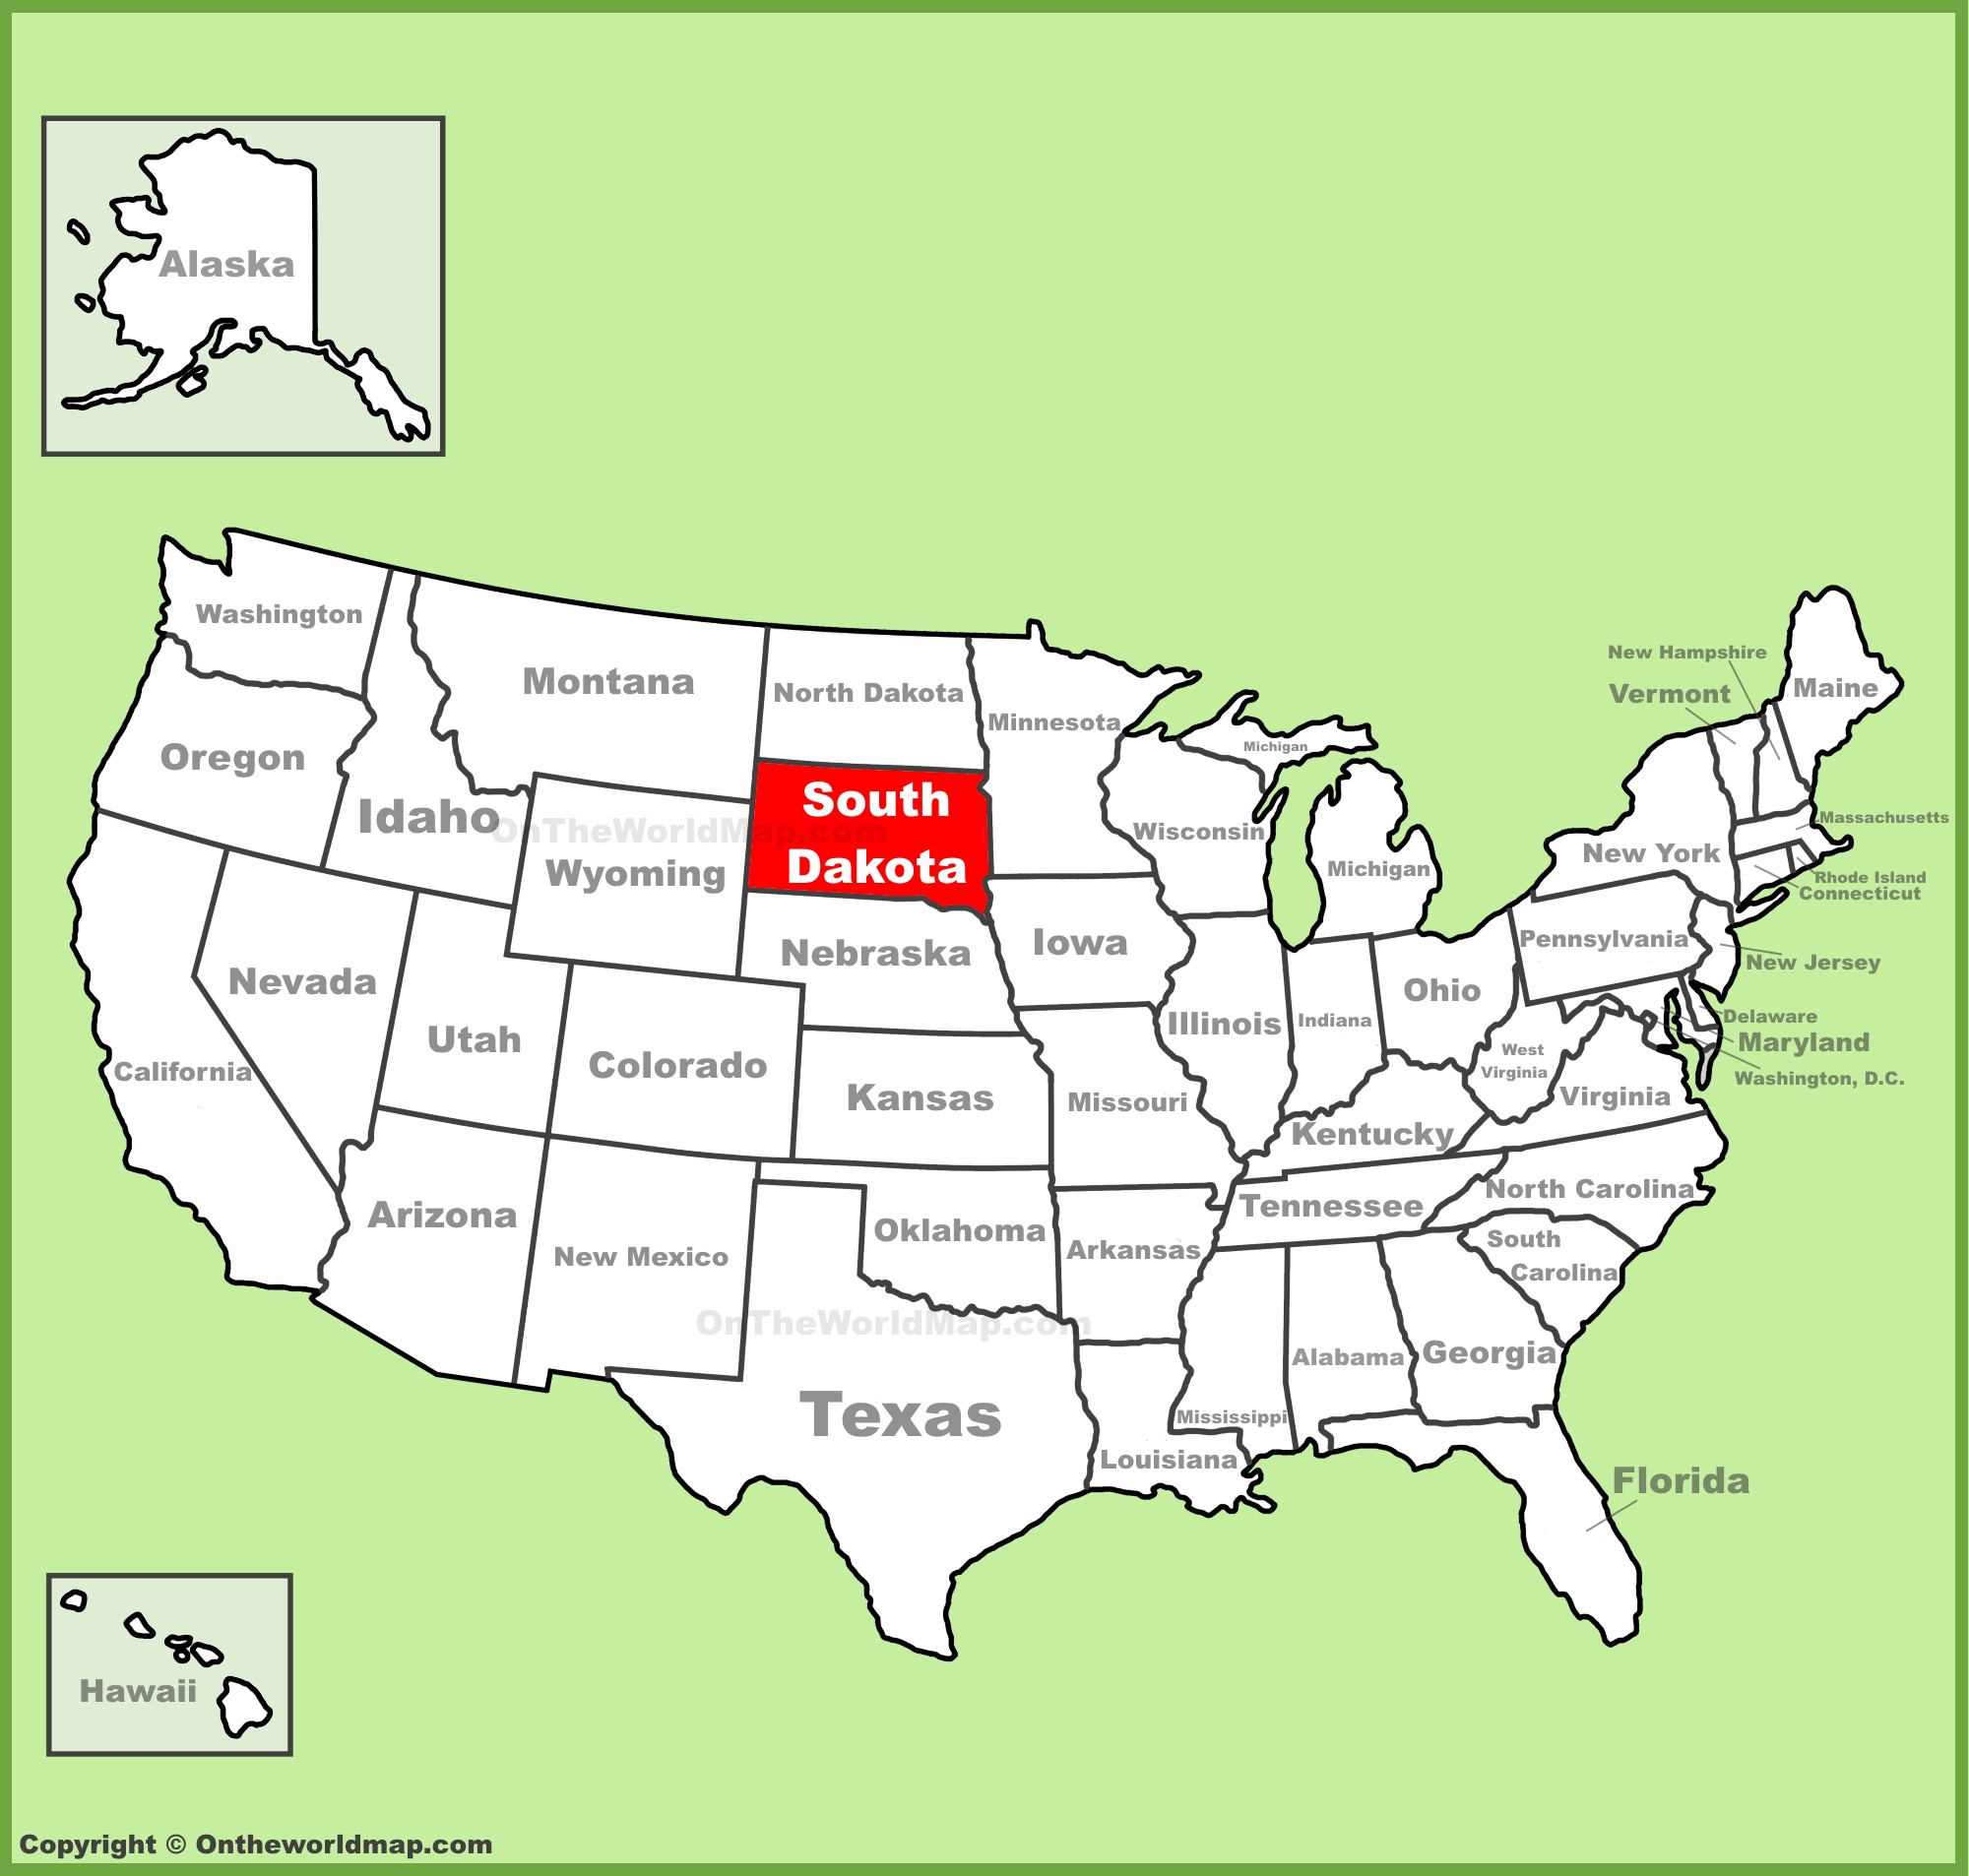 South Dakota location on the U.S. Map